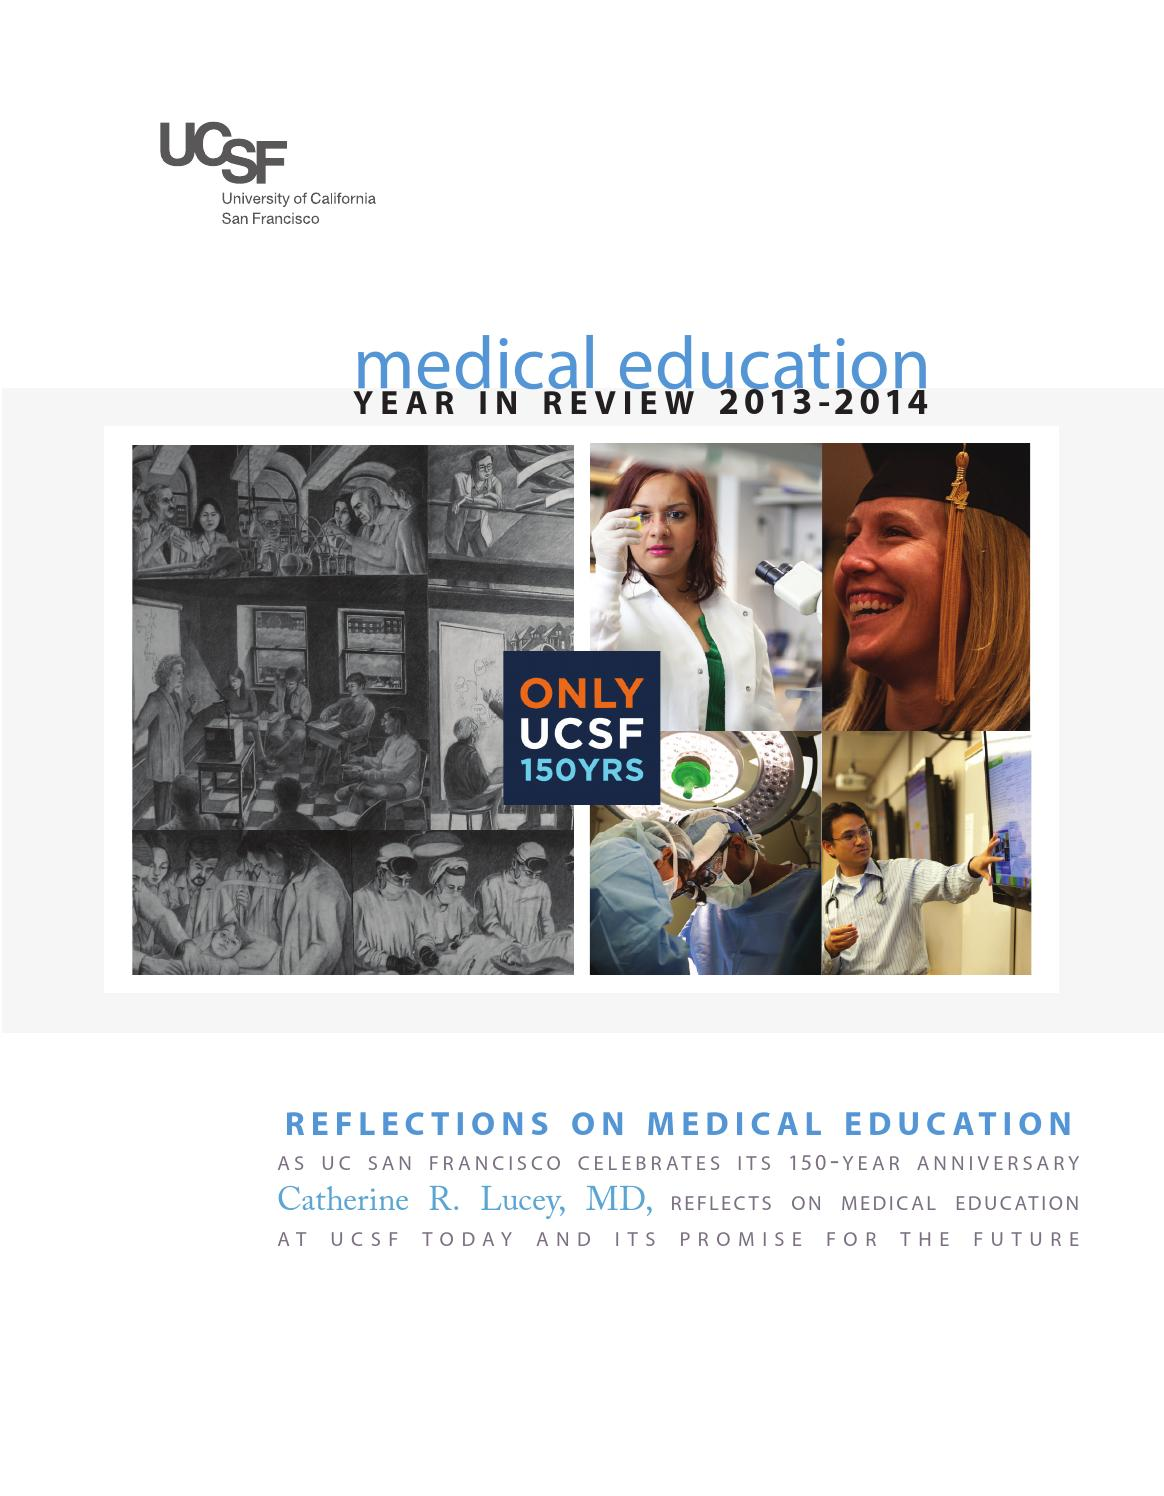 UCSF Office of Medical Education Year in Review 2013-14 by